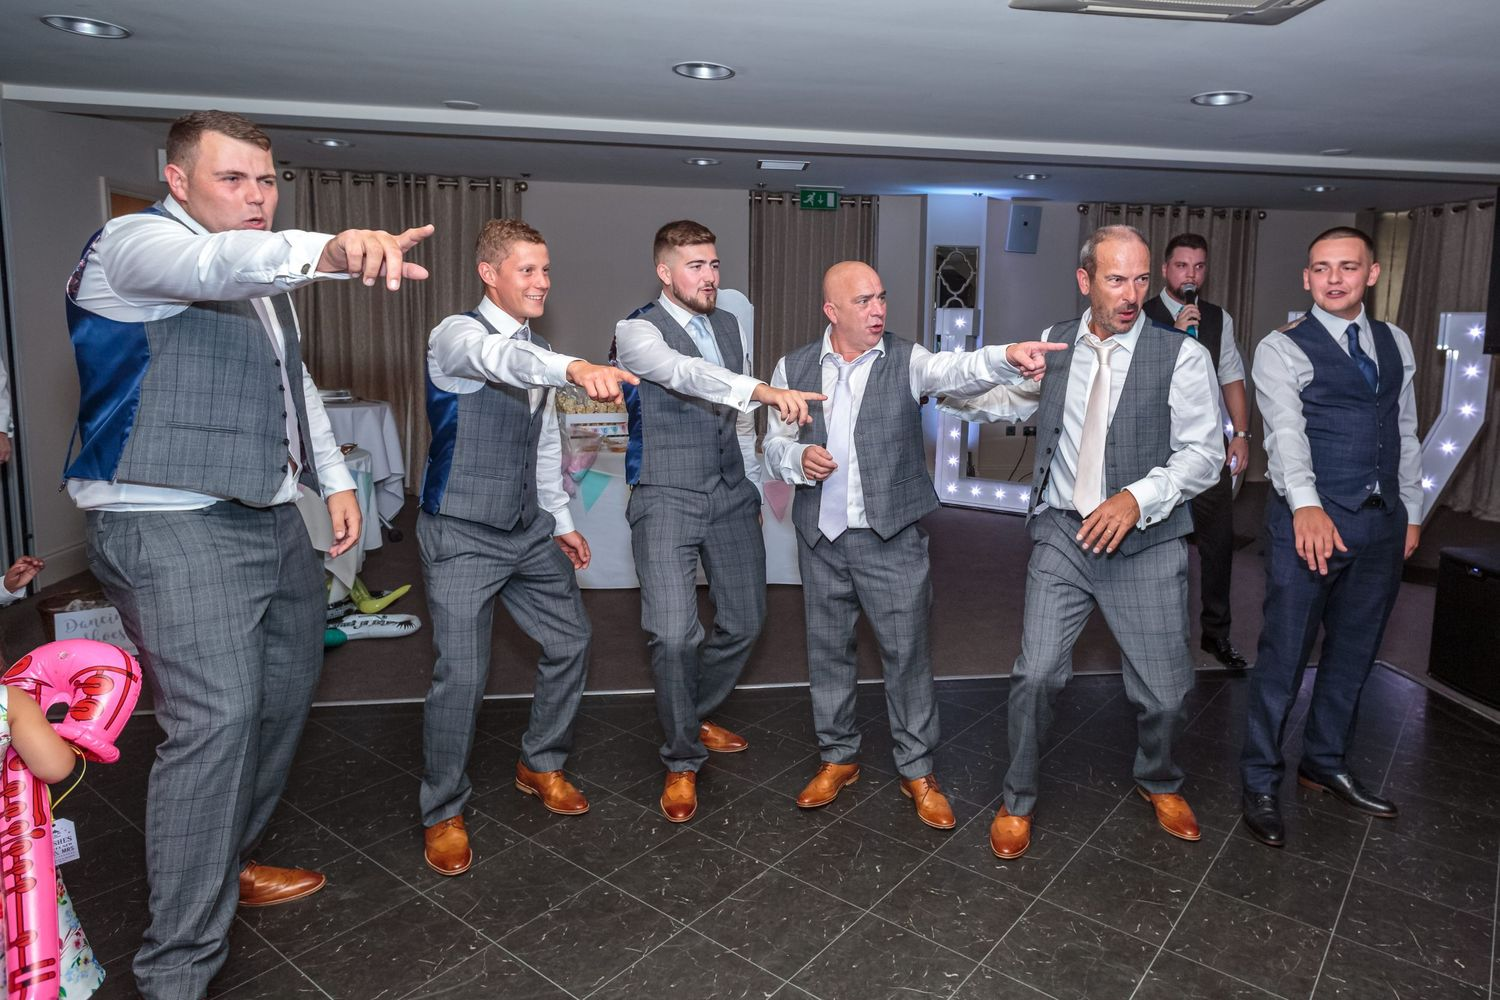 groomsmen lines up on the dancefloor pointing at the women during their impromptu dance routine